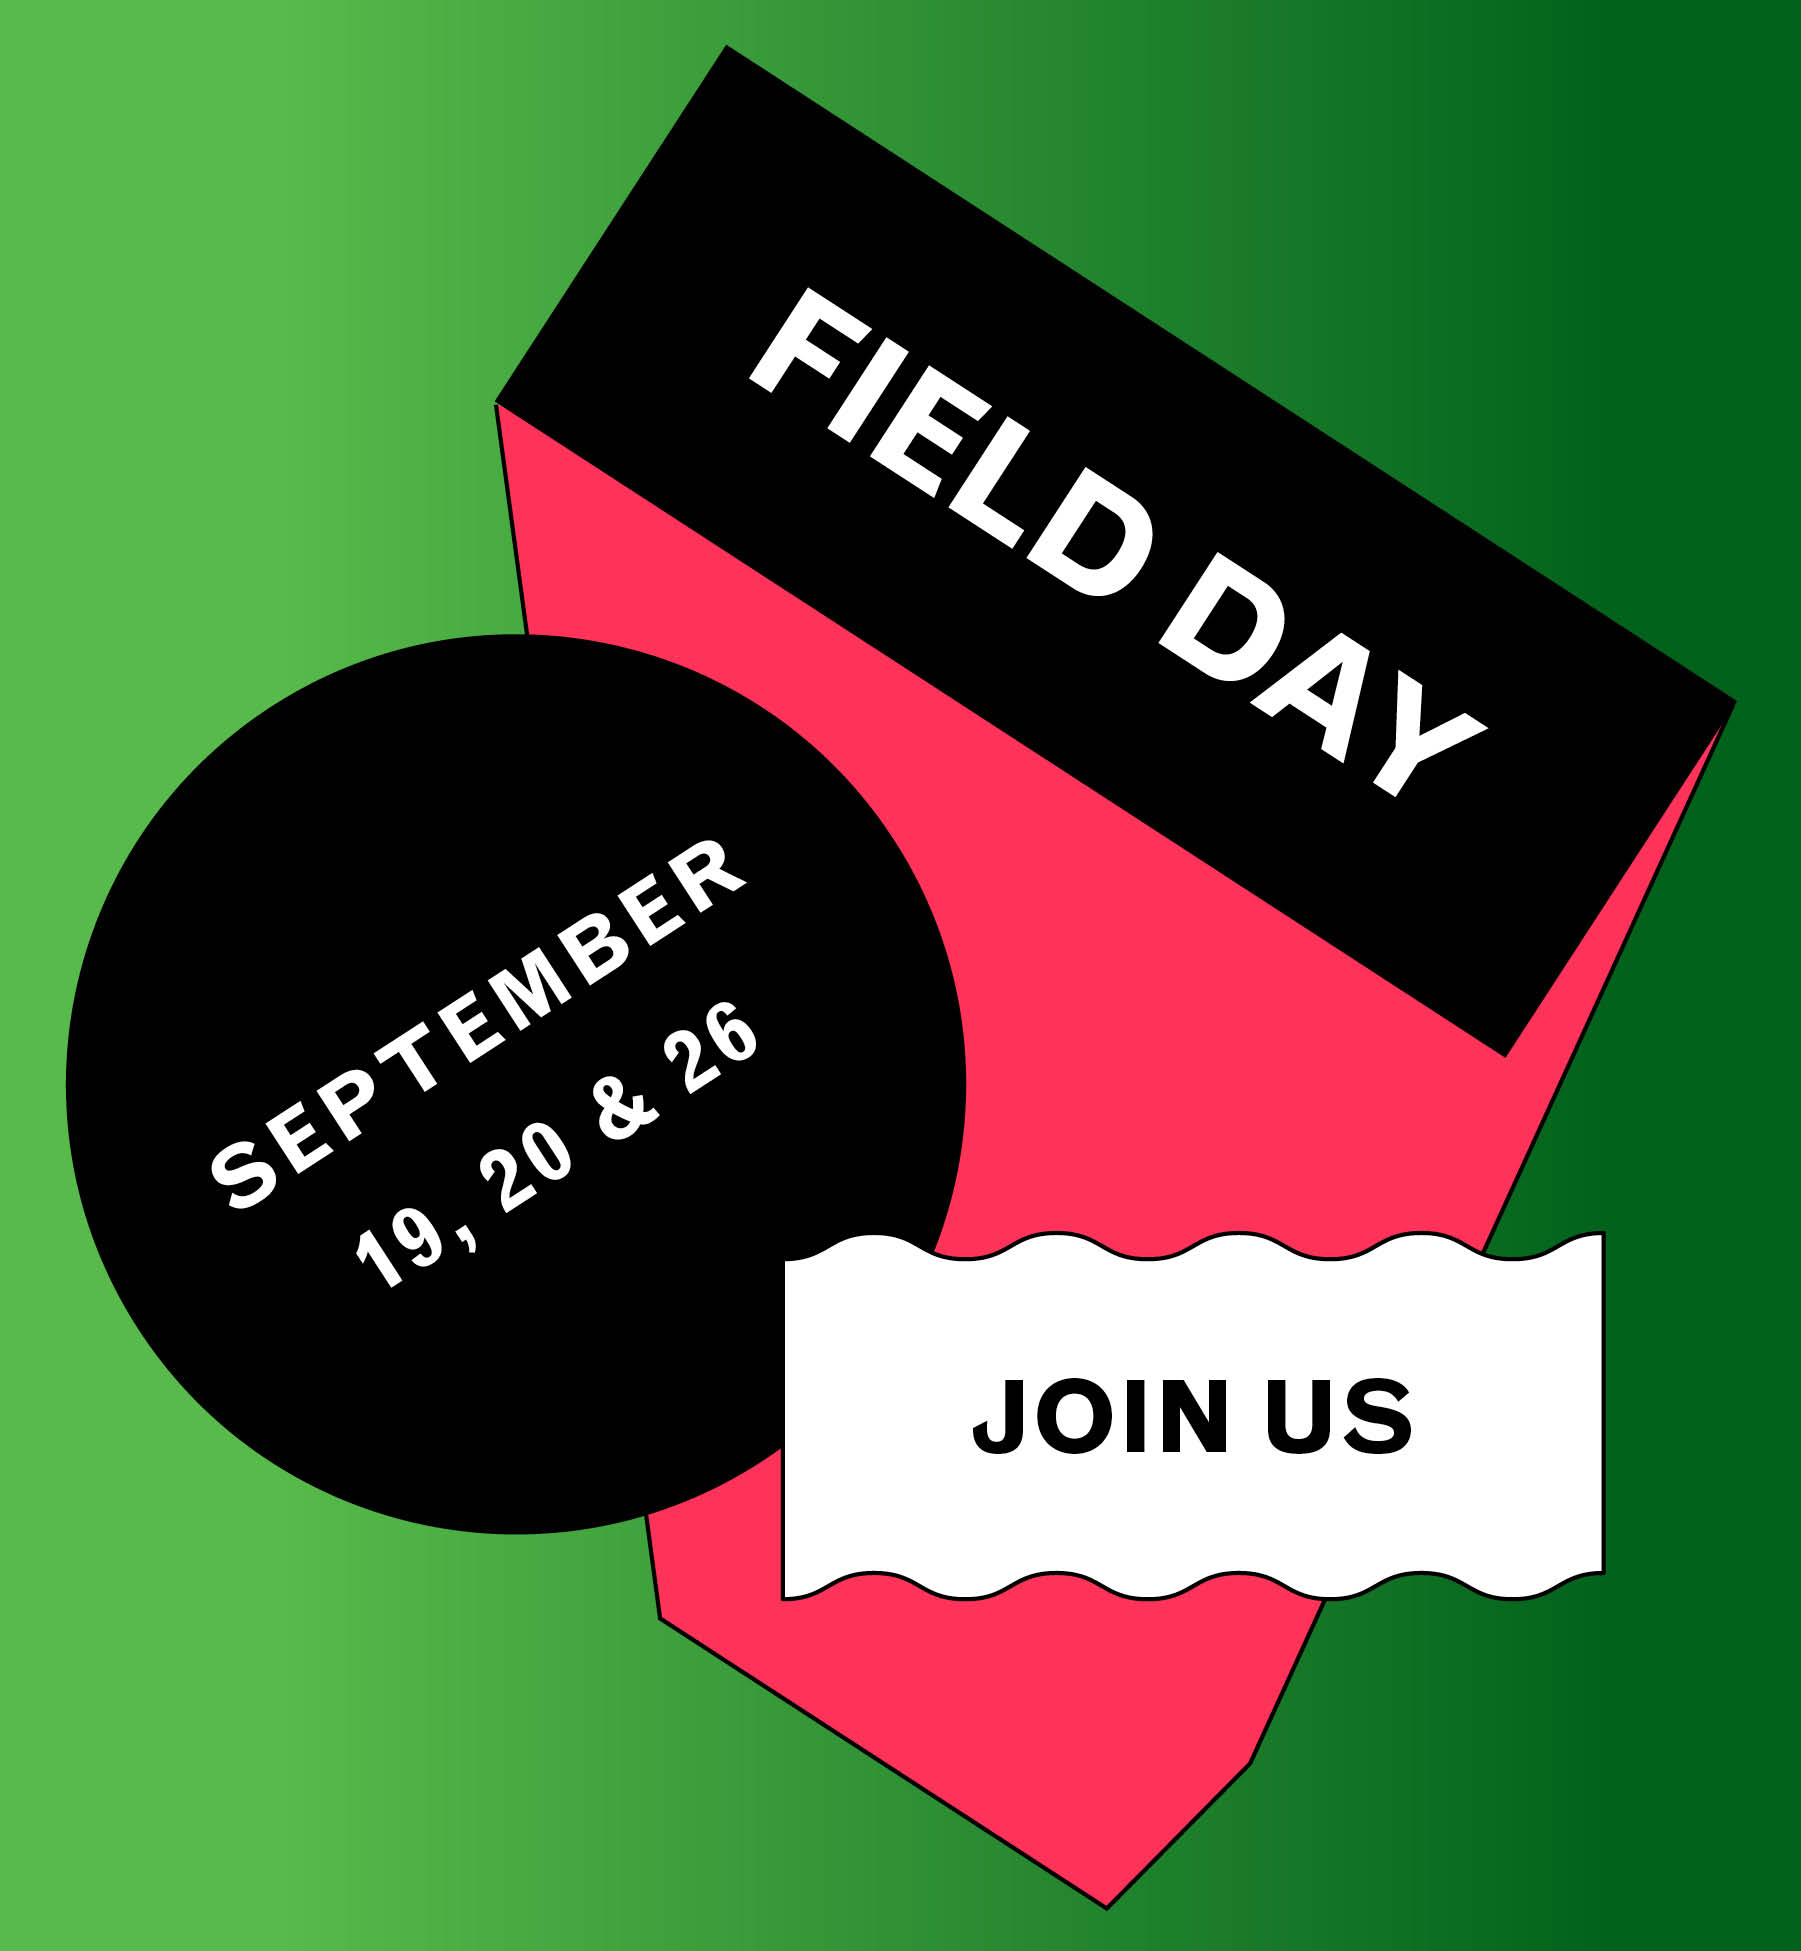 Save the Date Field Day 2015